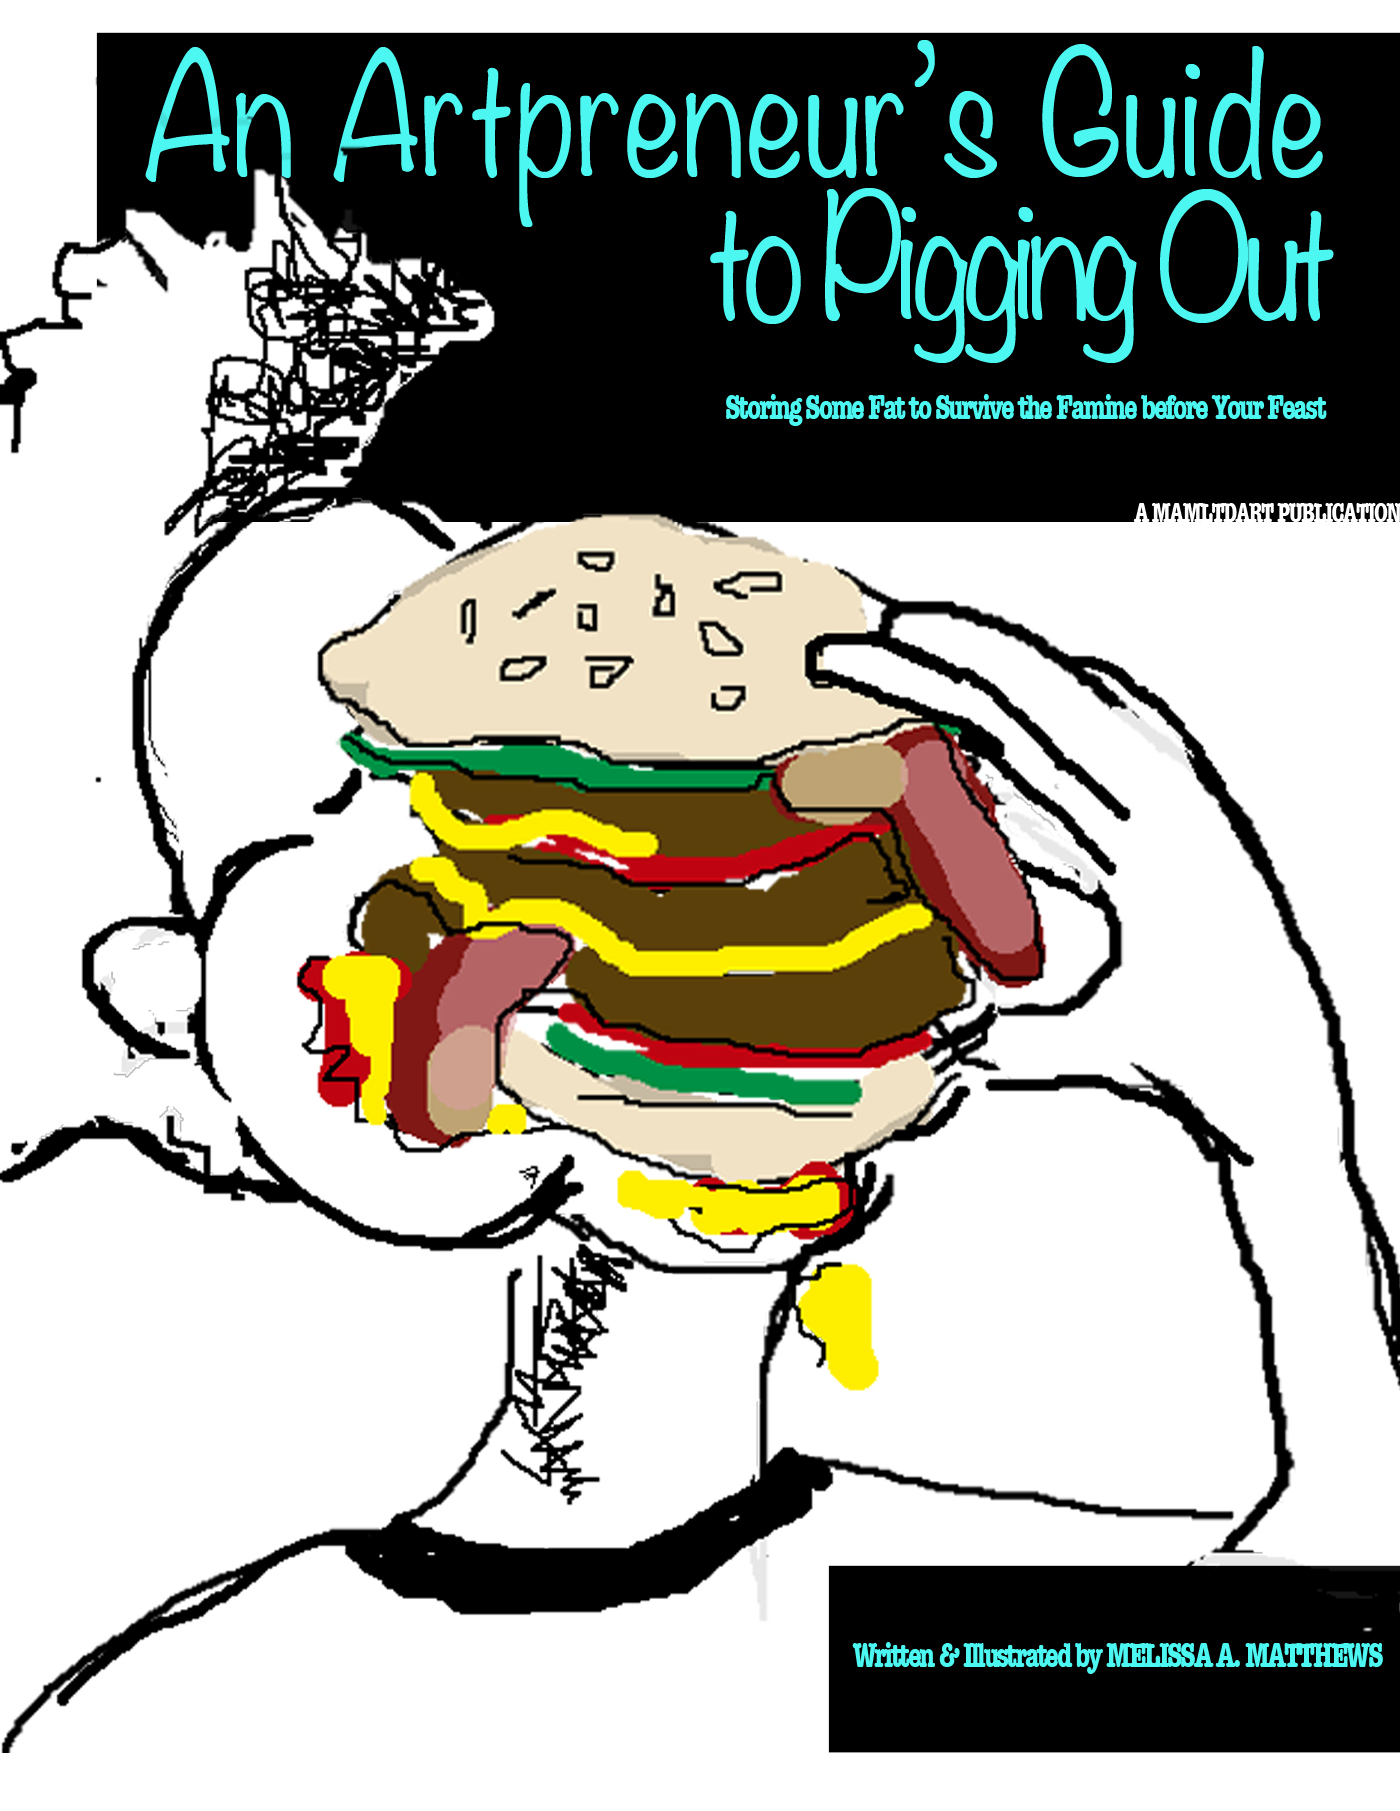 An Artpreneur's Guide to Pigging Out